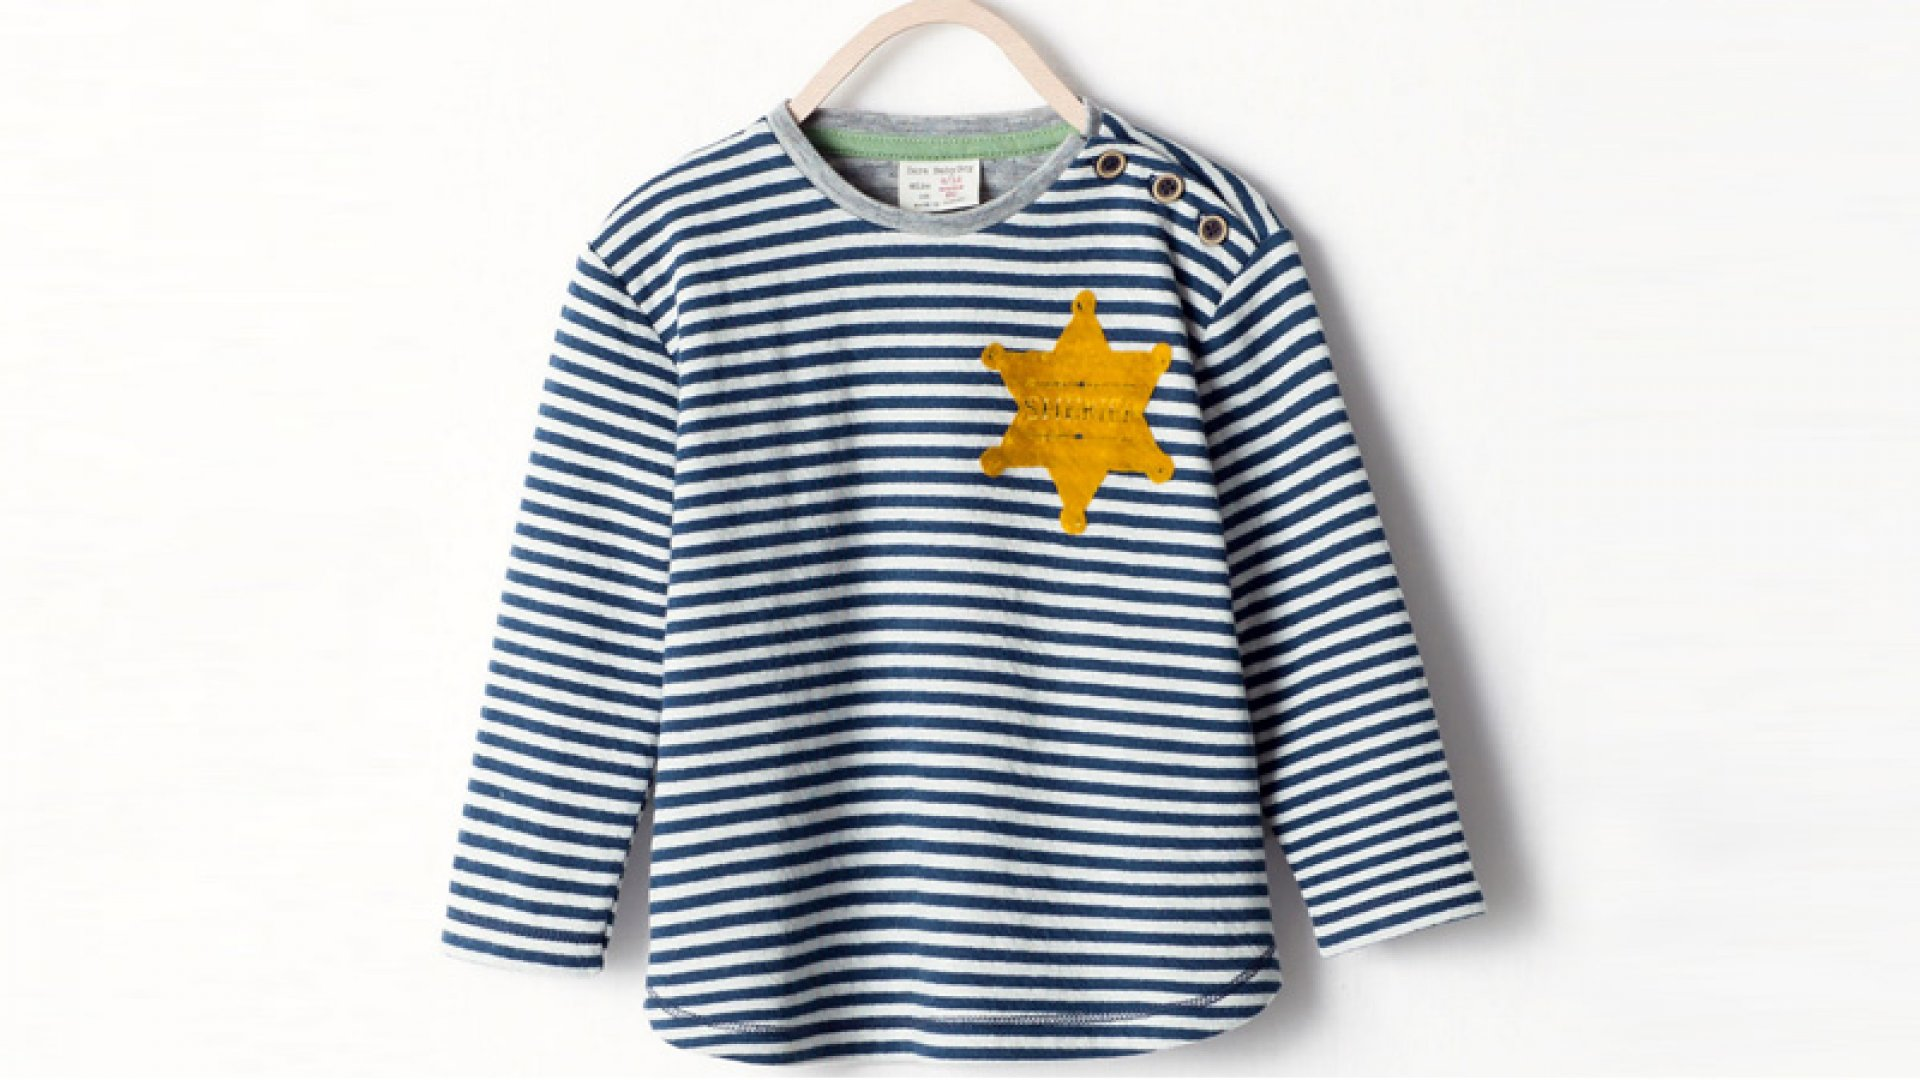 Zara Proves Cultural Illiteracy Is Seriously Bad Business